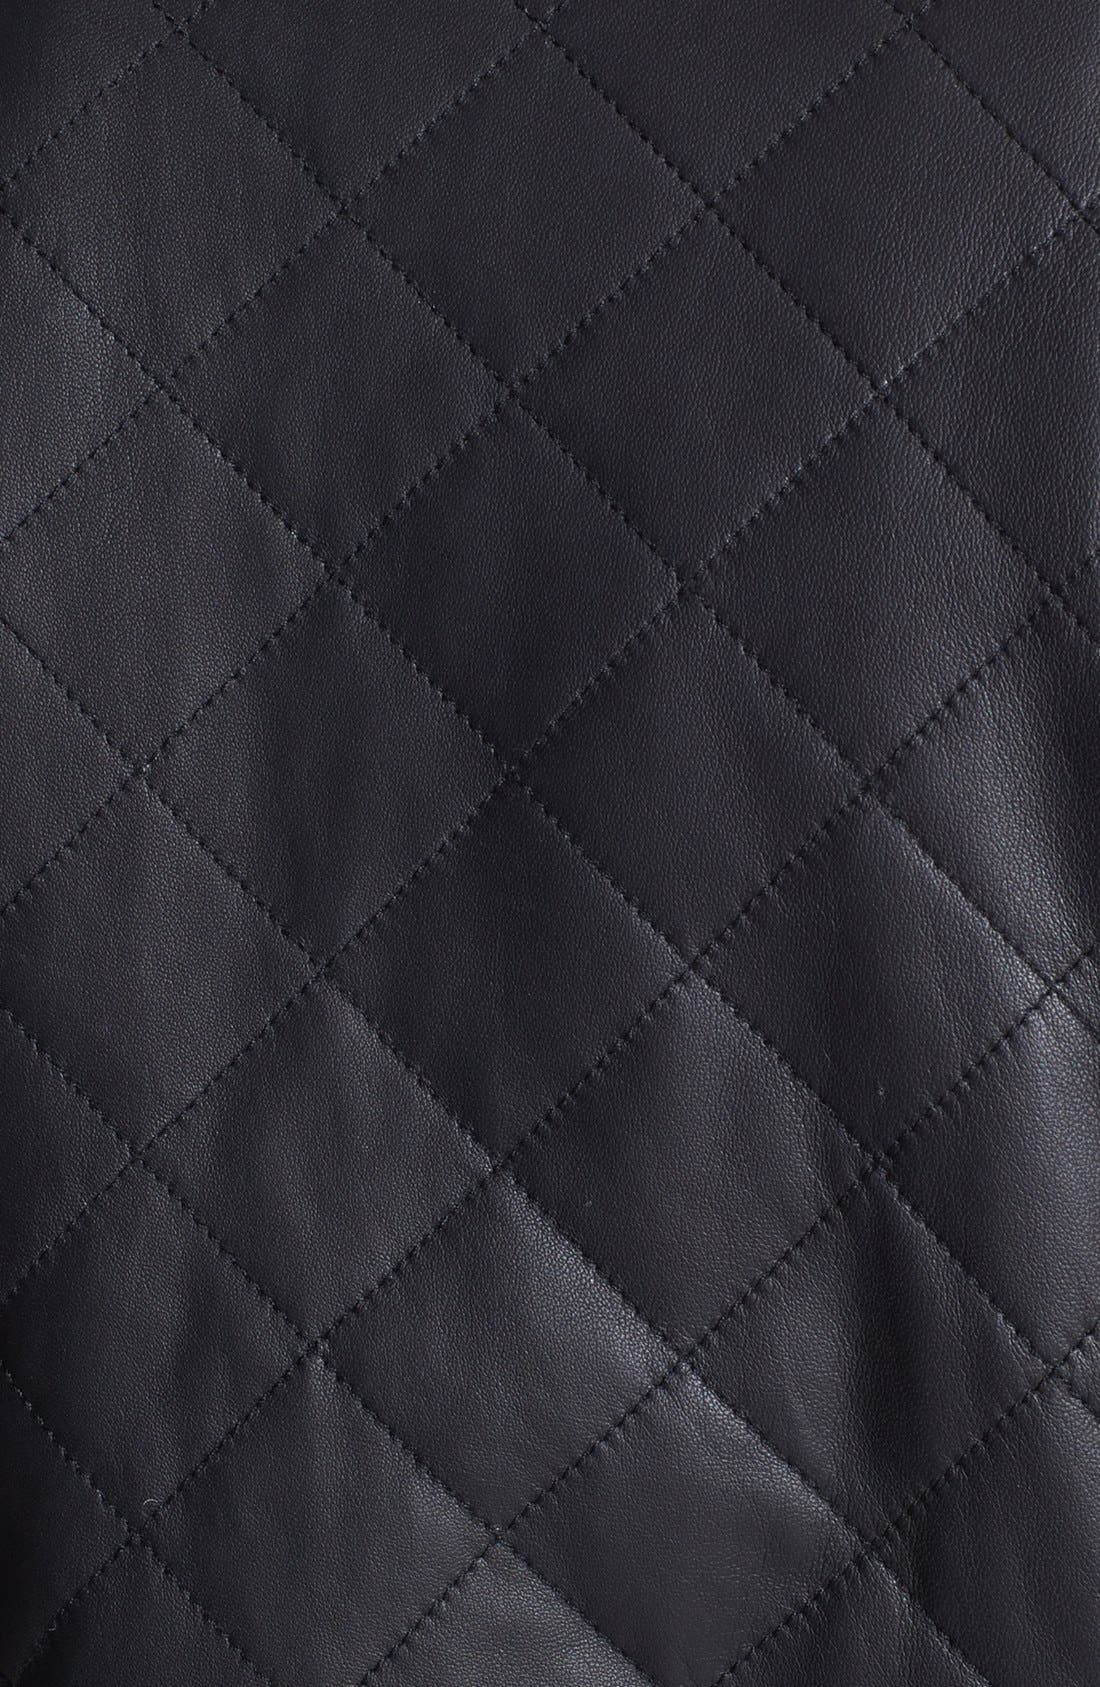 Quilted Leather Bomber Jacket,                             Alternate thumbnail 4, color,                             001